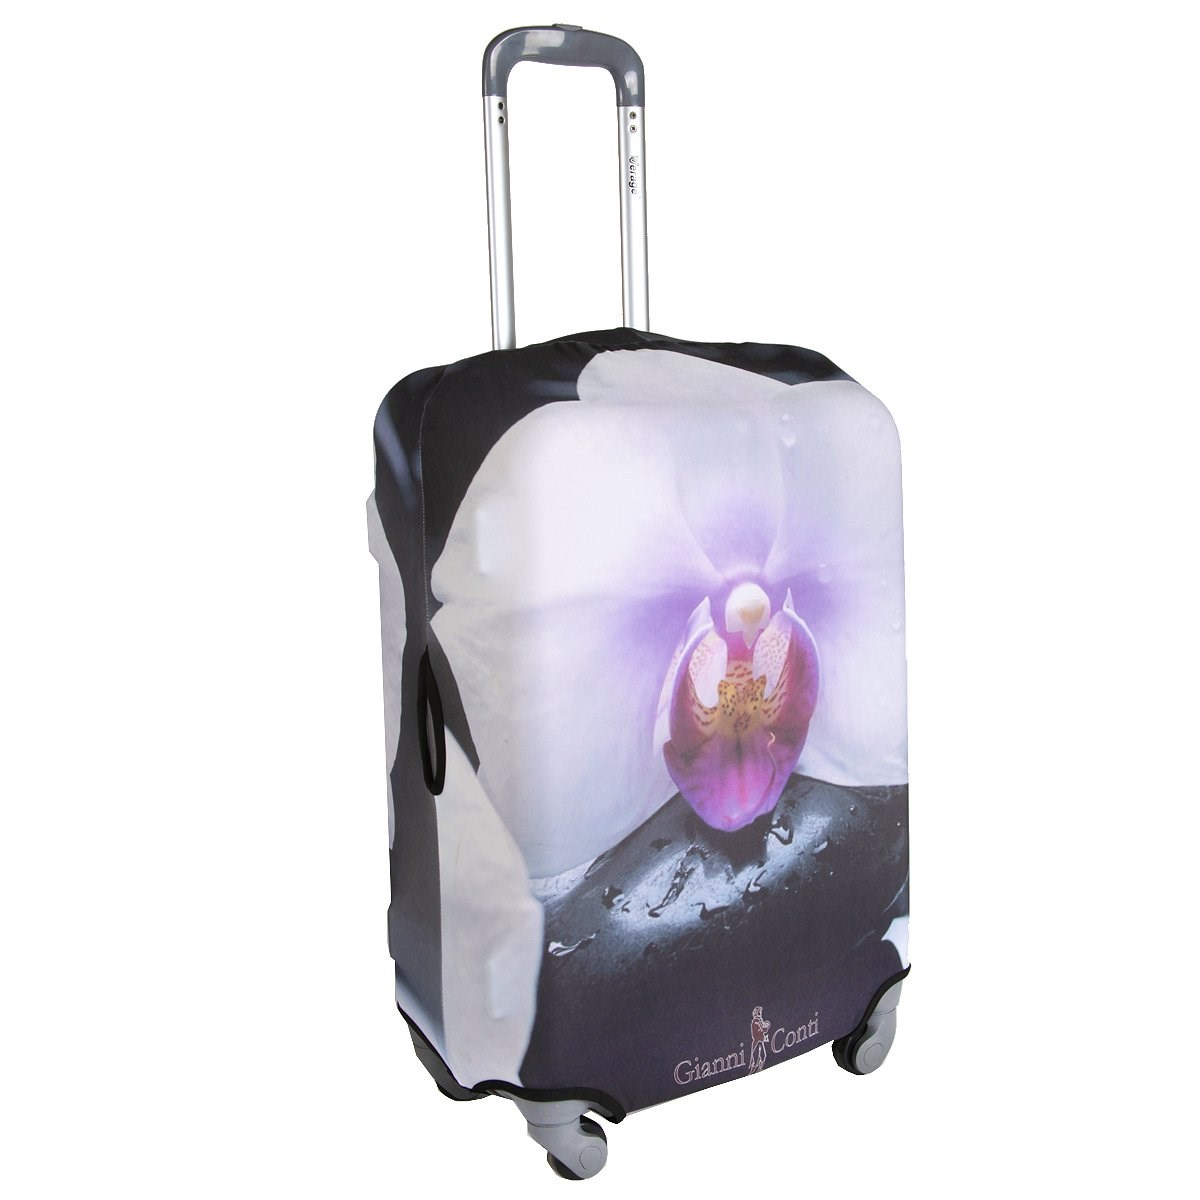 Protective cover for suitcase 9005 L protective cover for suitcase 9005 m